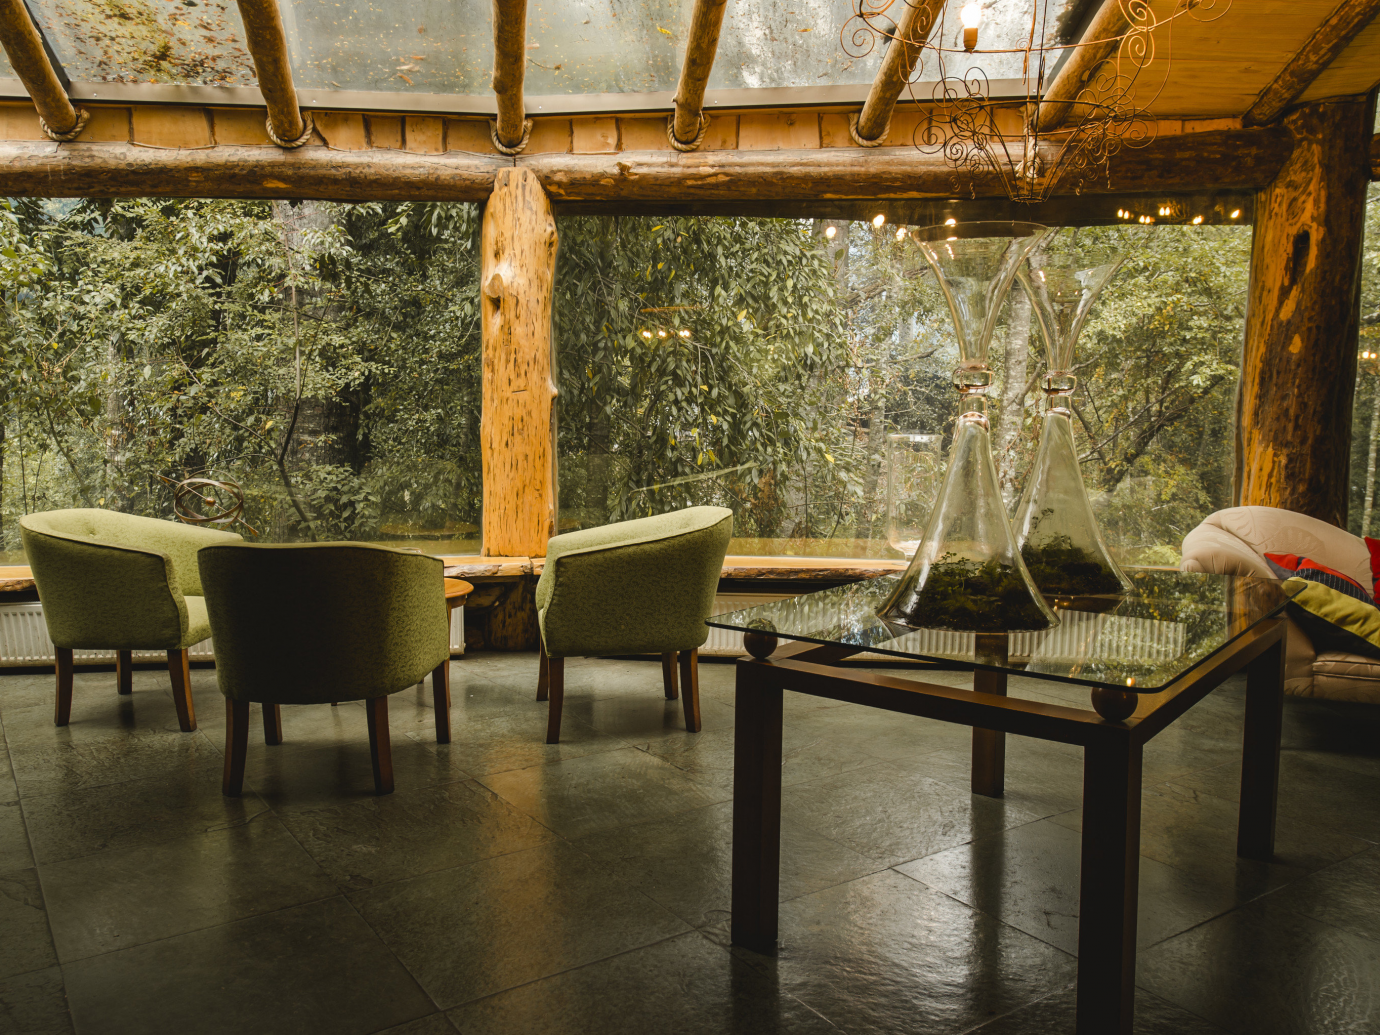 Interior seating space with wall sized windows showing the lush outdoors